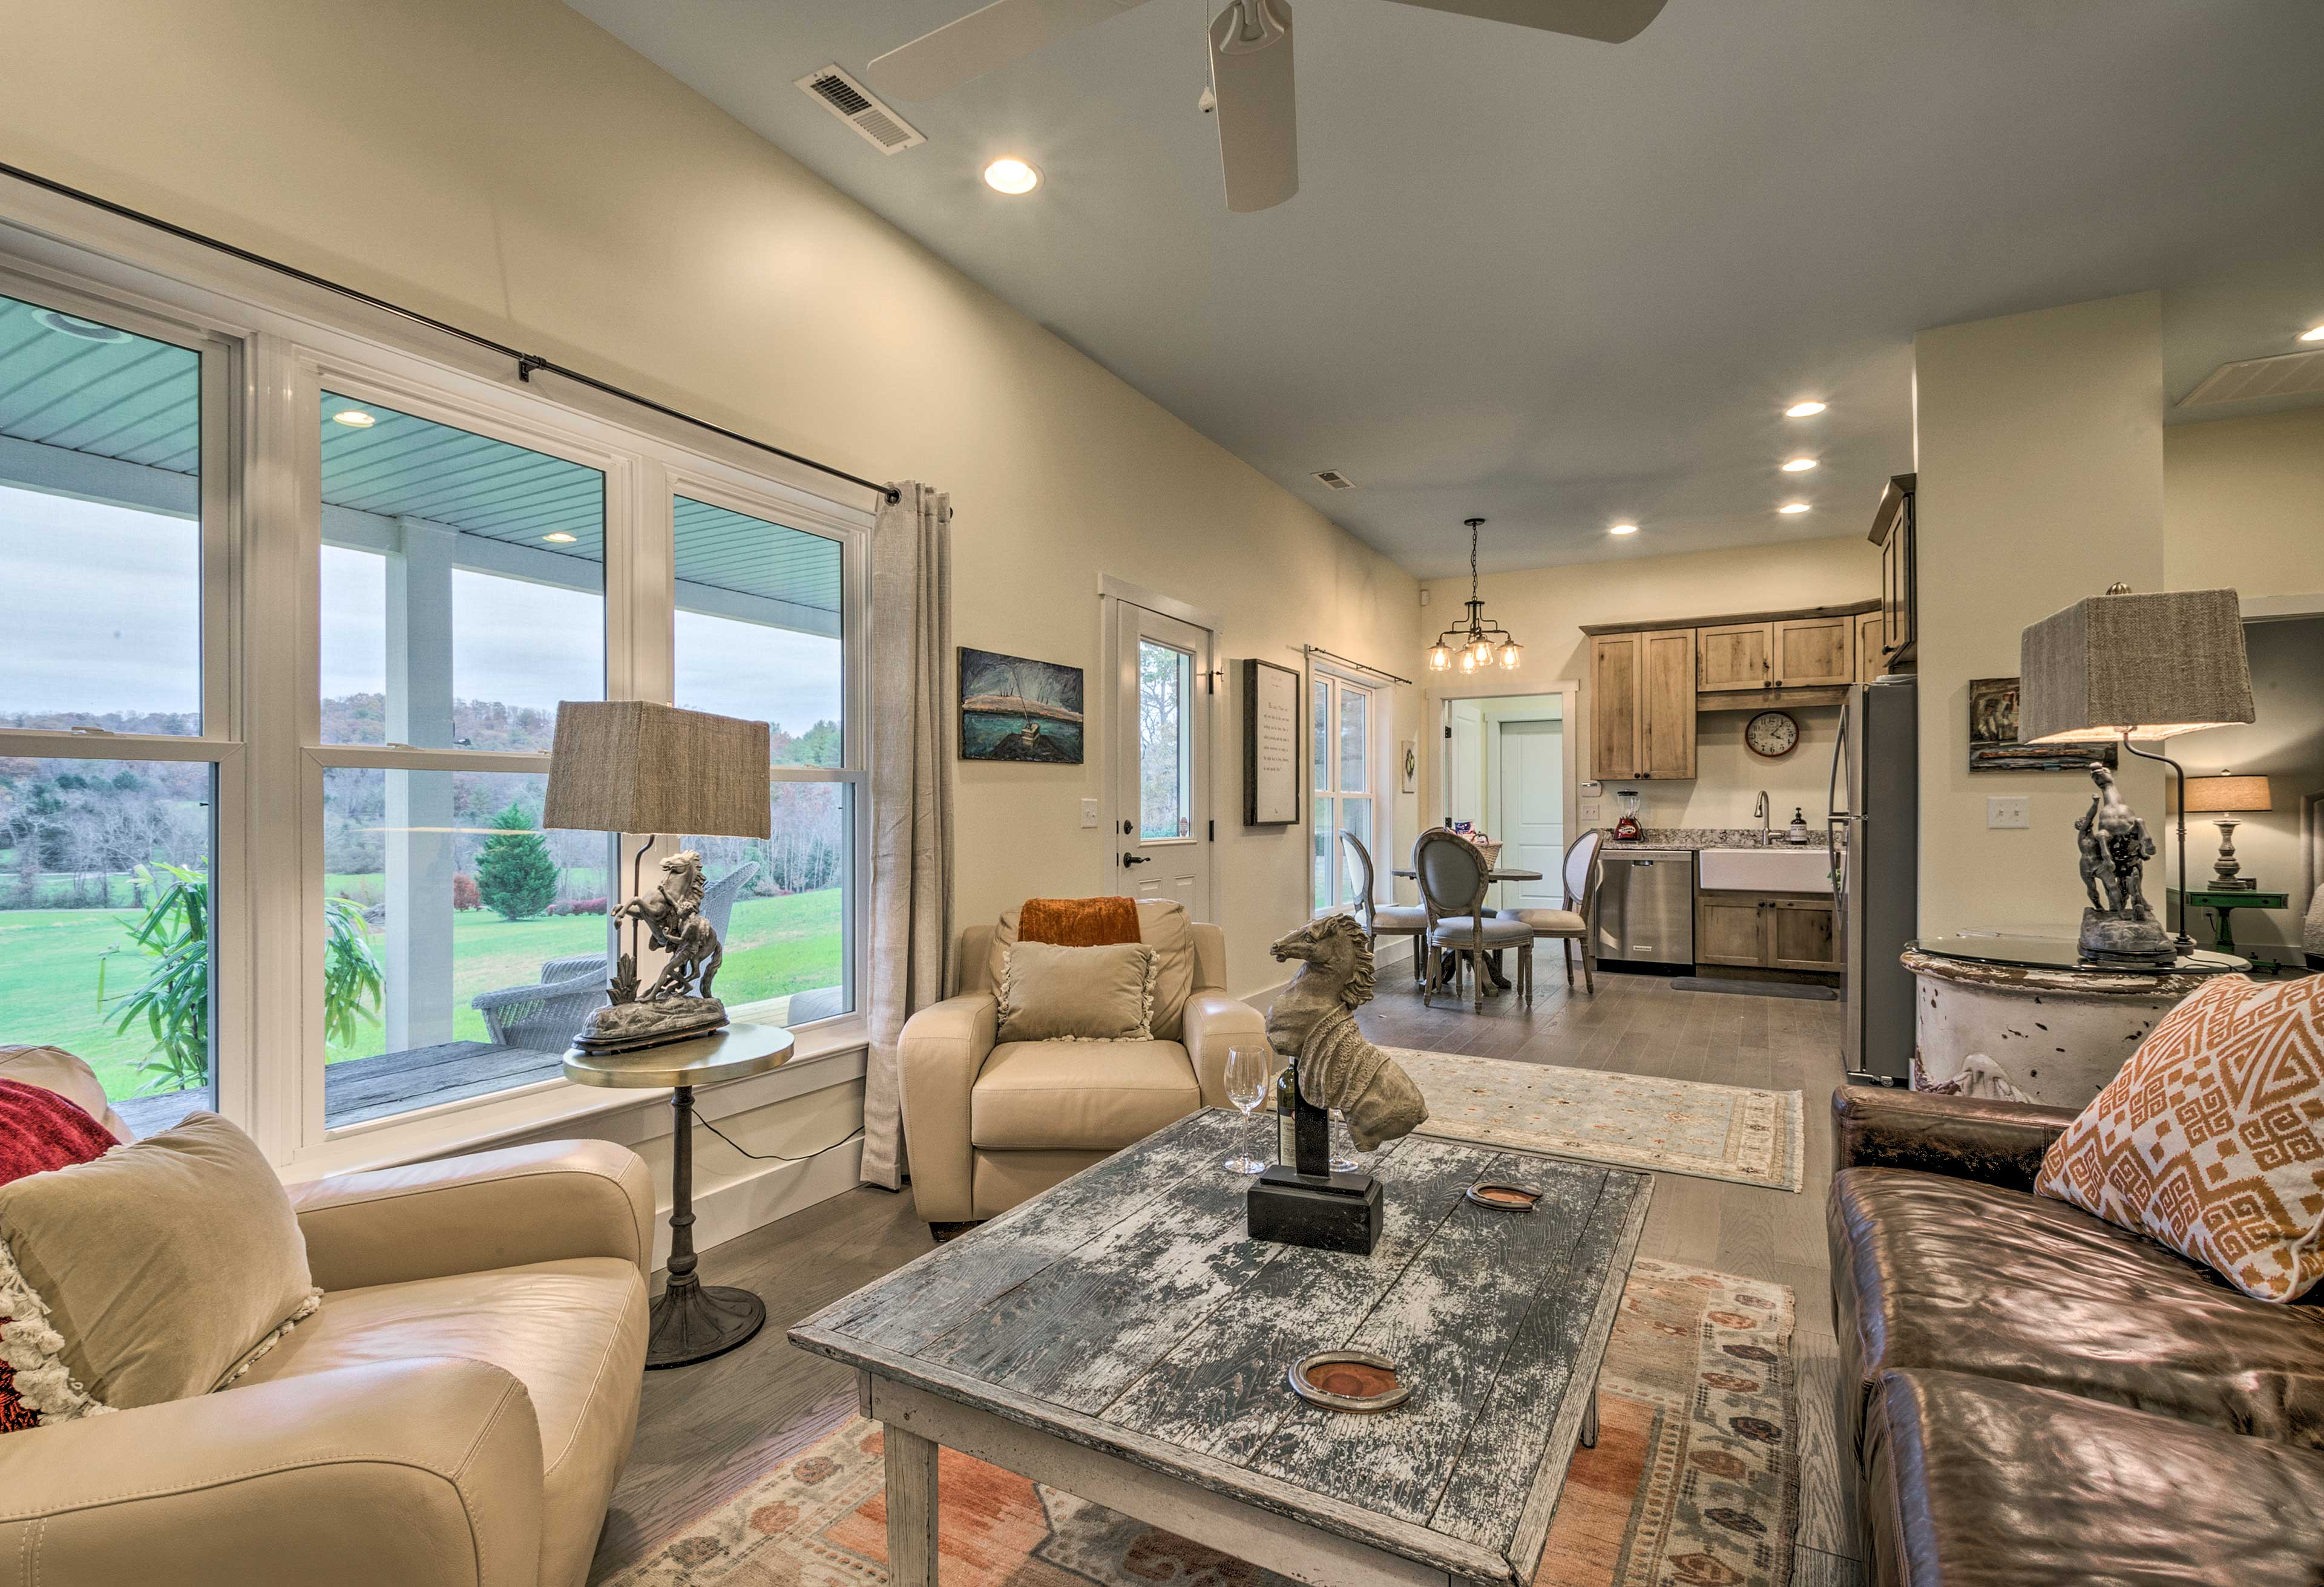 The open floor concept makes it easy to entertain everyone!